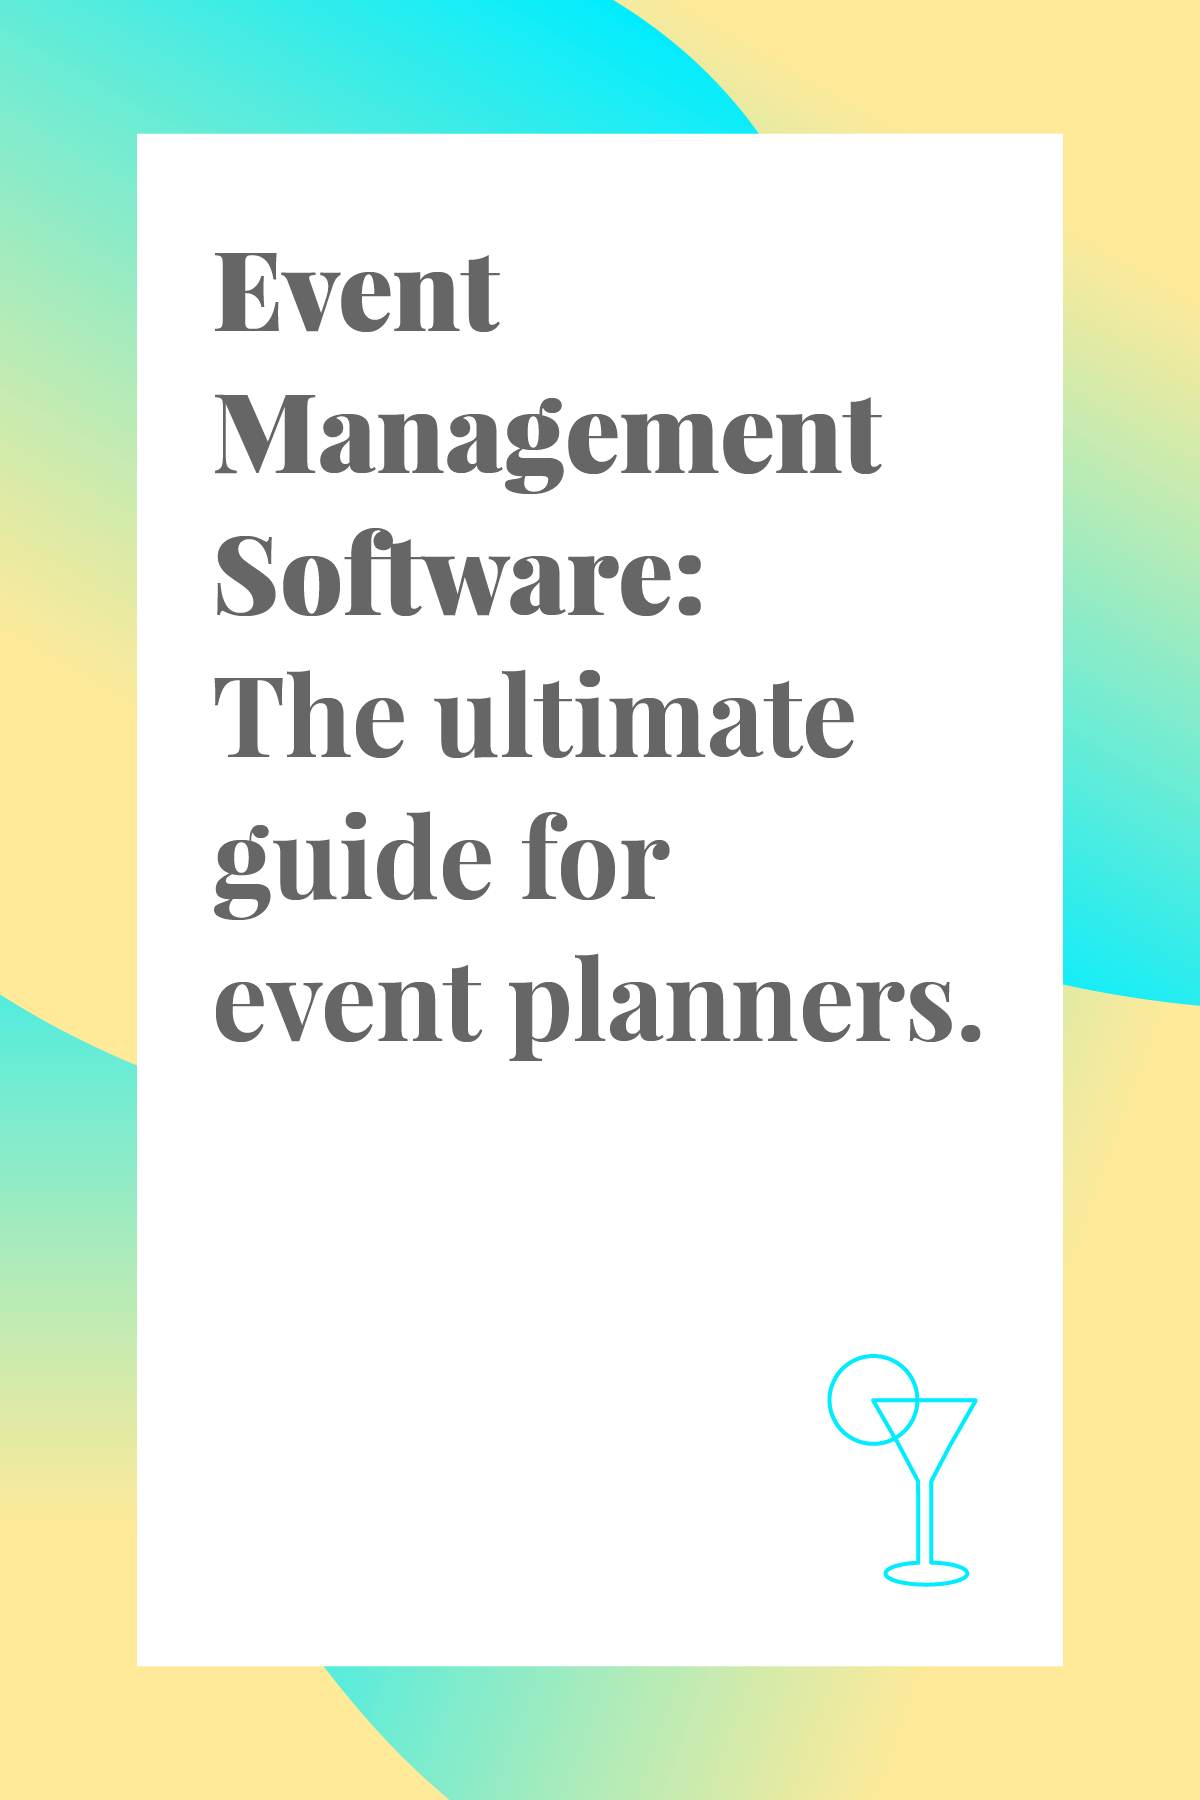 Here's a comprehensive list of event management software that every event planner needs to know about. Pin now and read later! #eventplanner #eventmanagement